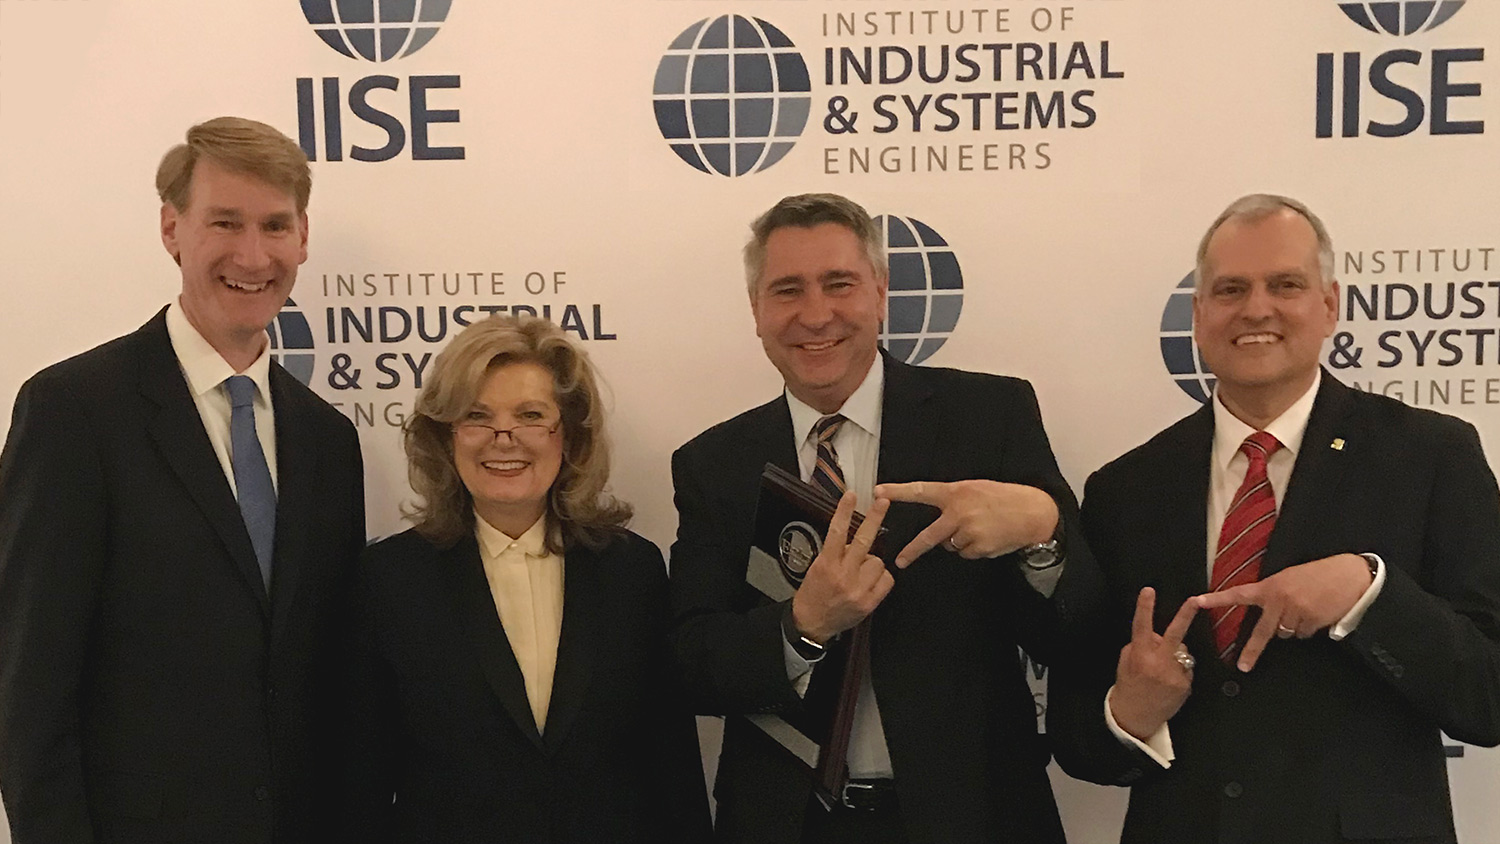 Don Taylor (second from right) with Joe Hartman (immediate past president IISE), Jamie Rogers (president-elect IISE), and Tim McGlothlin (president IISE)